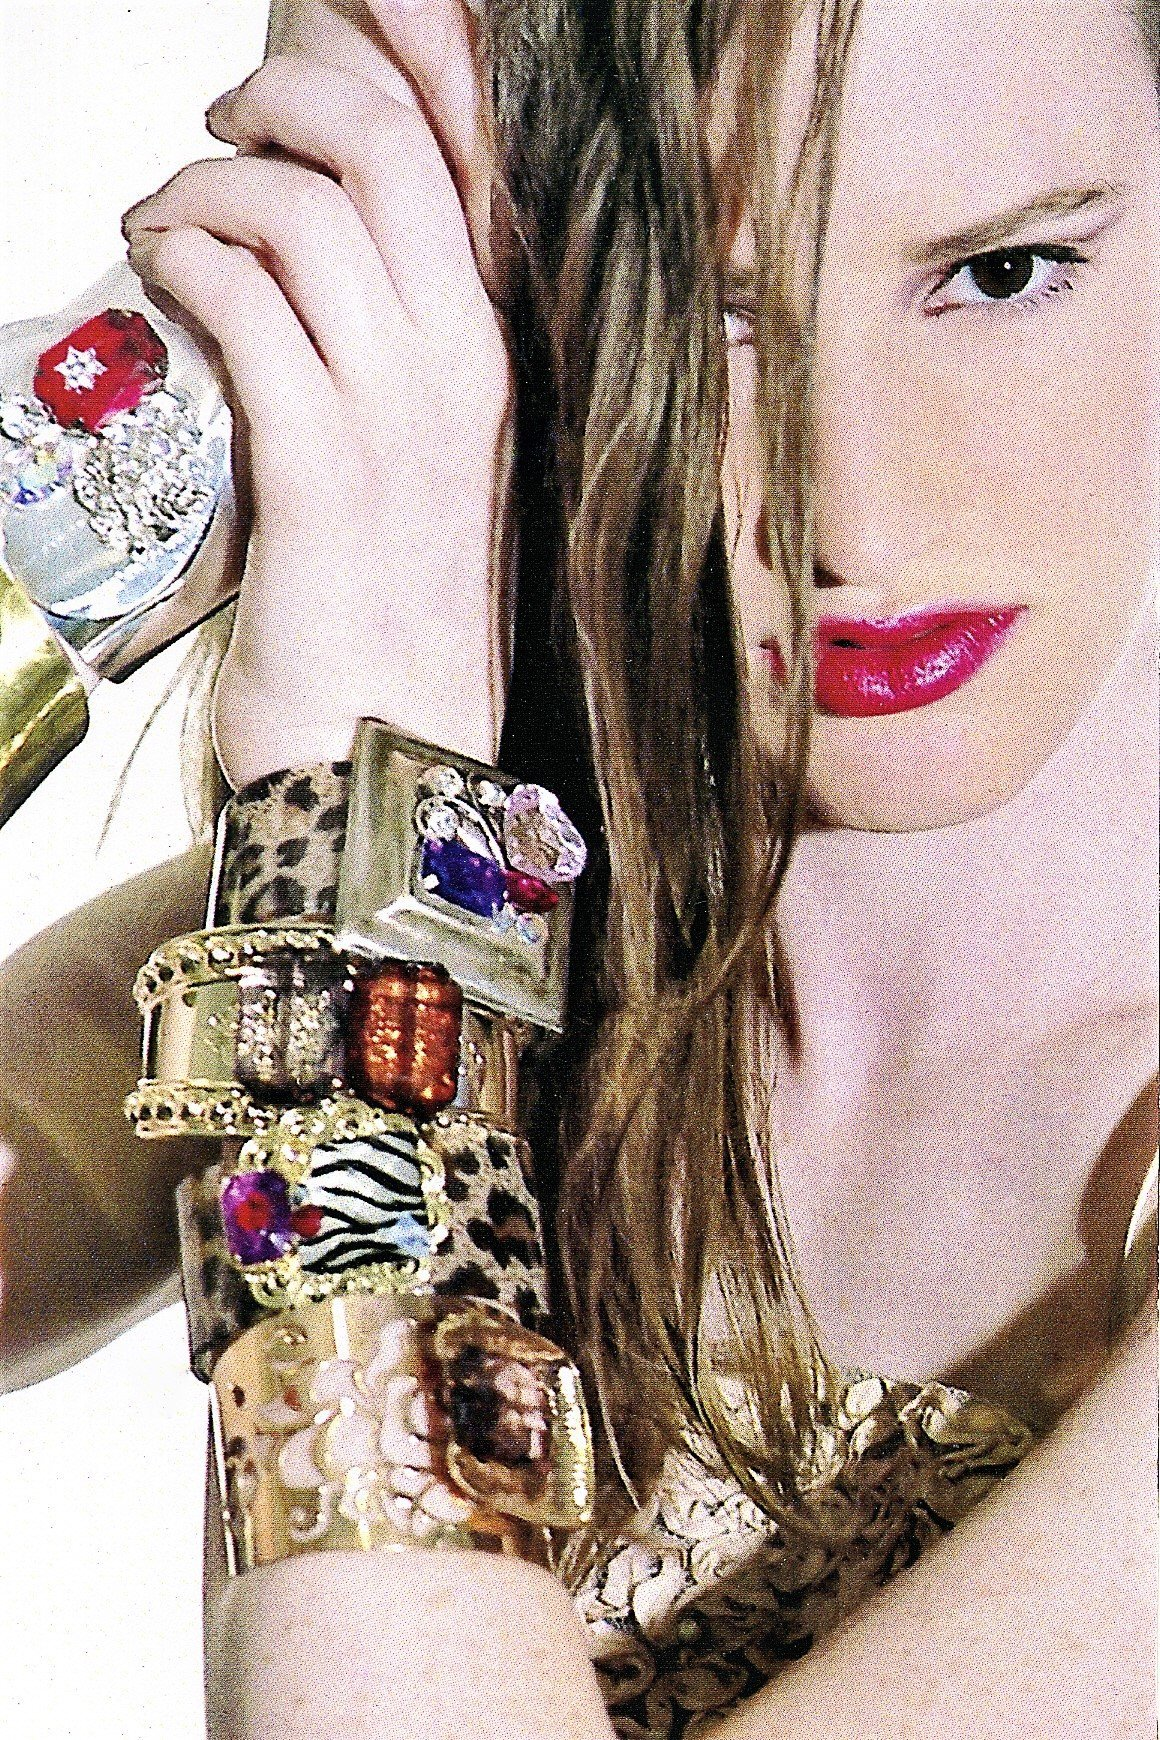 CHANDELIERS CUFFS in multiple colors and styles worn by EMILY.